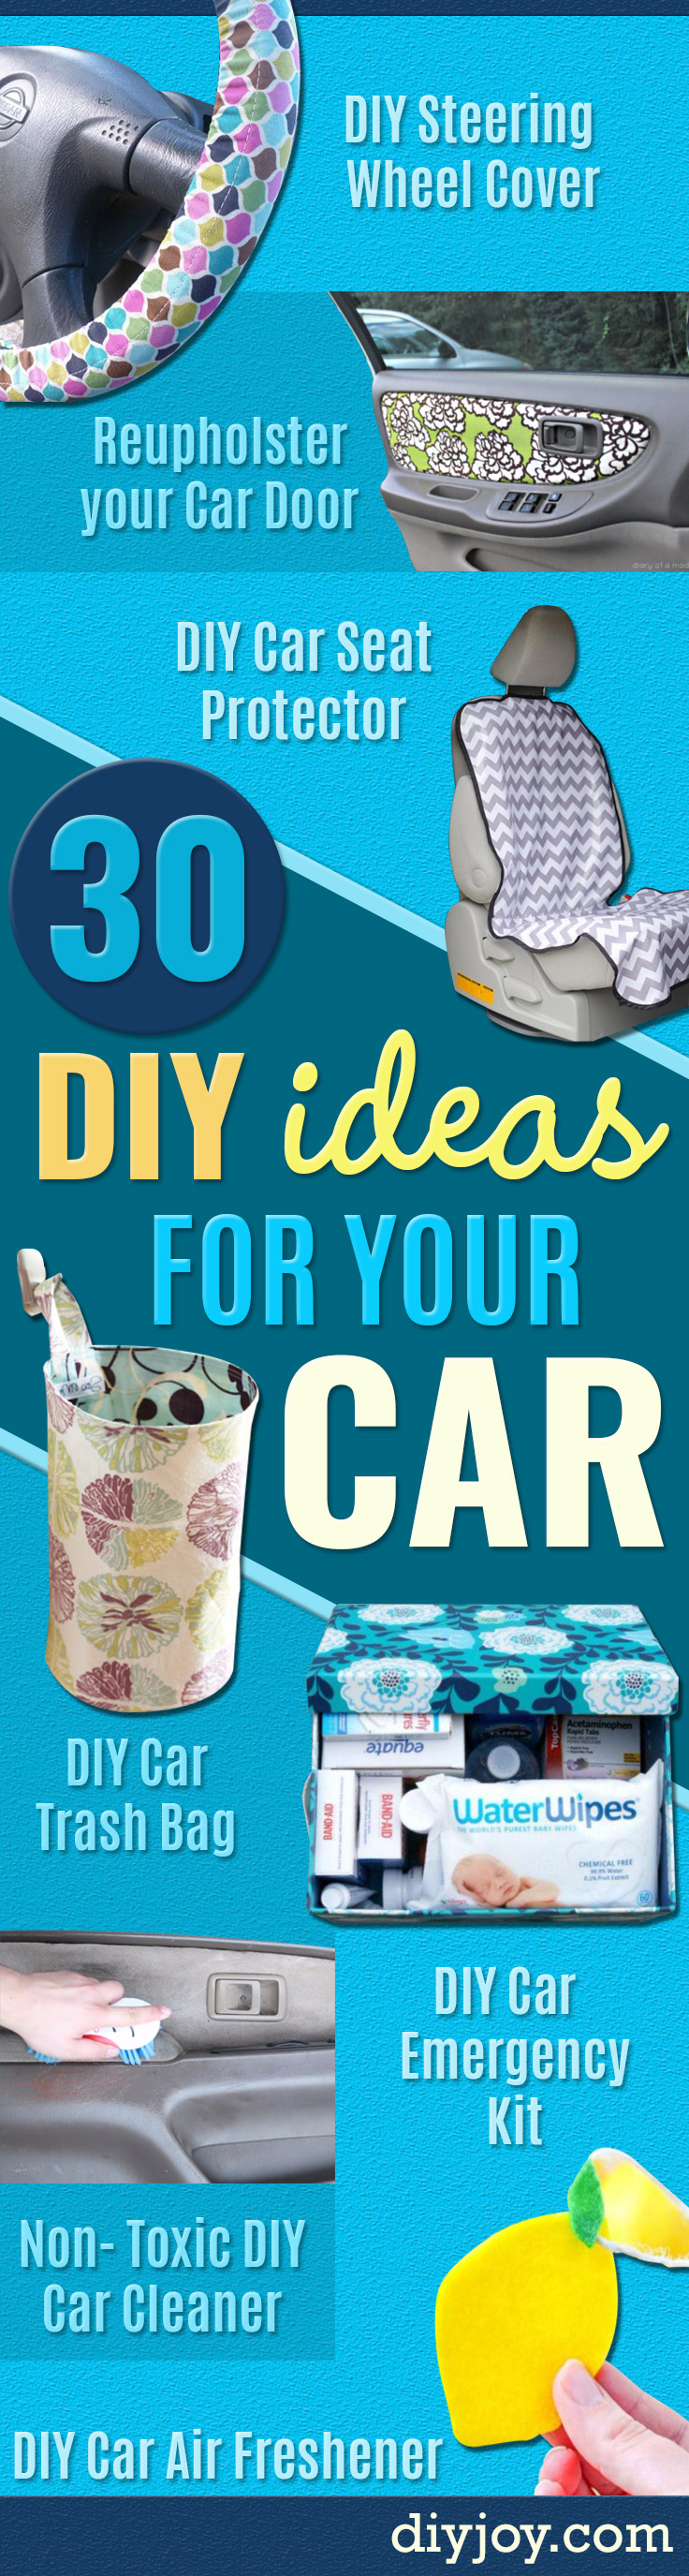 DIY Car Accessories and Ideas for Cars - Interior and Exterior, Seats, Mirror, Seat Covers, Storage, Carpet and Window Cleaners and Products - Decor, Keys and Iphone and Tablet Holders - DIY Projects and Crafts for Women and Men